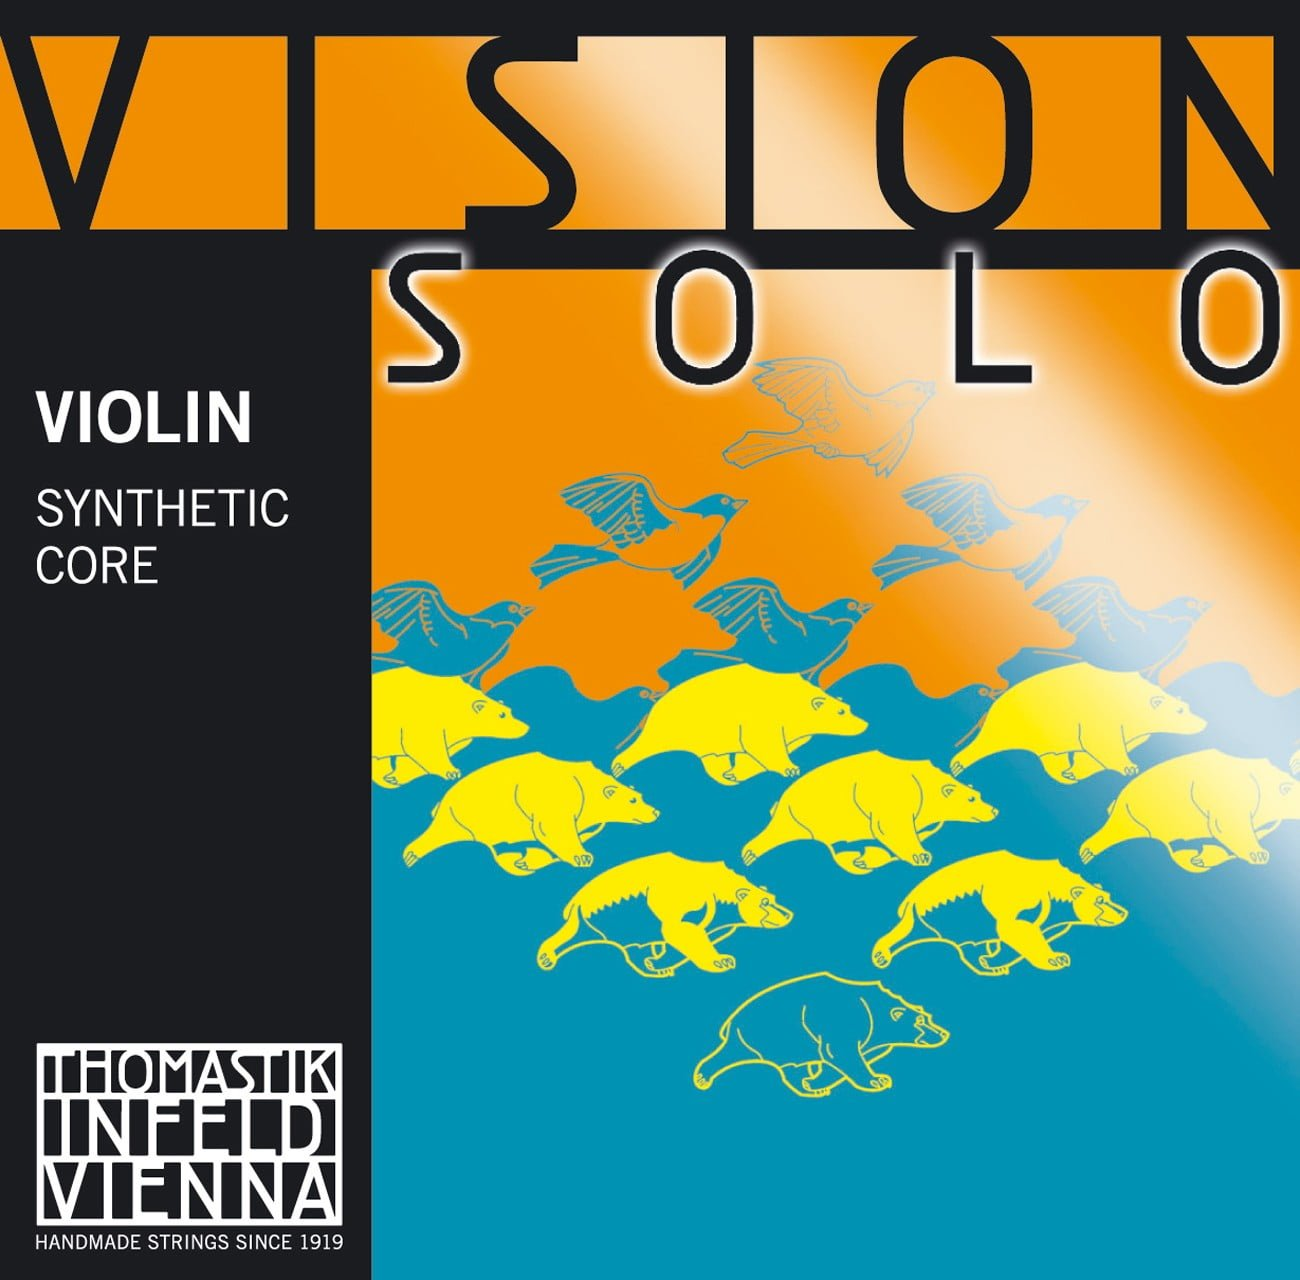 Vision Solo Violin Strings